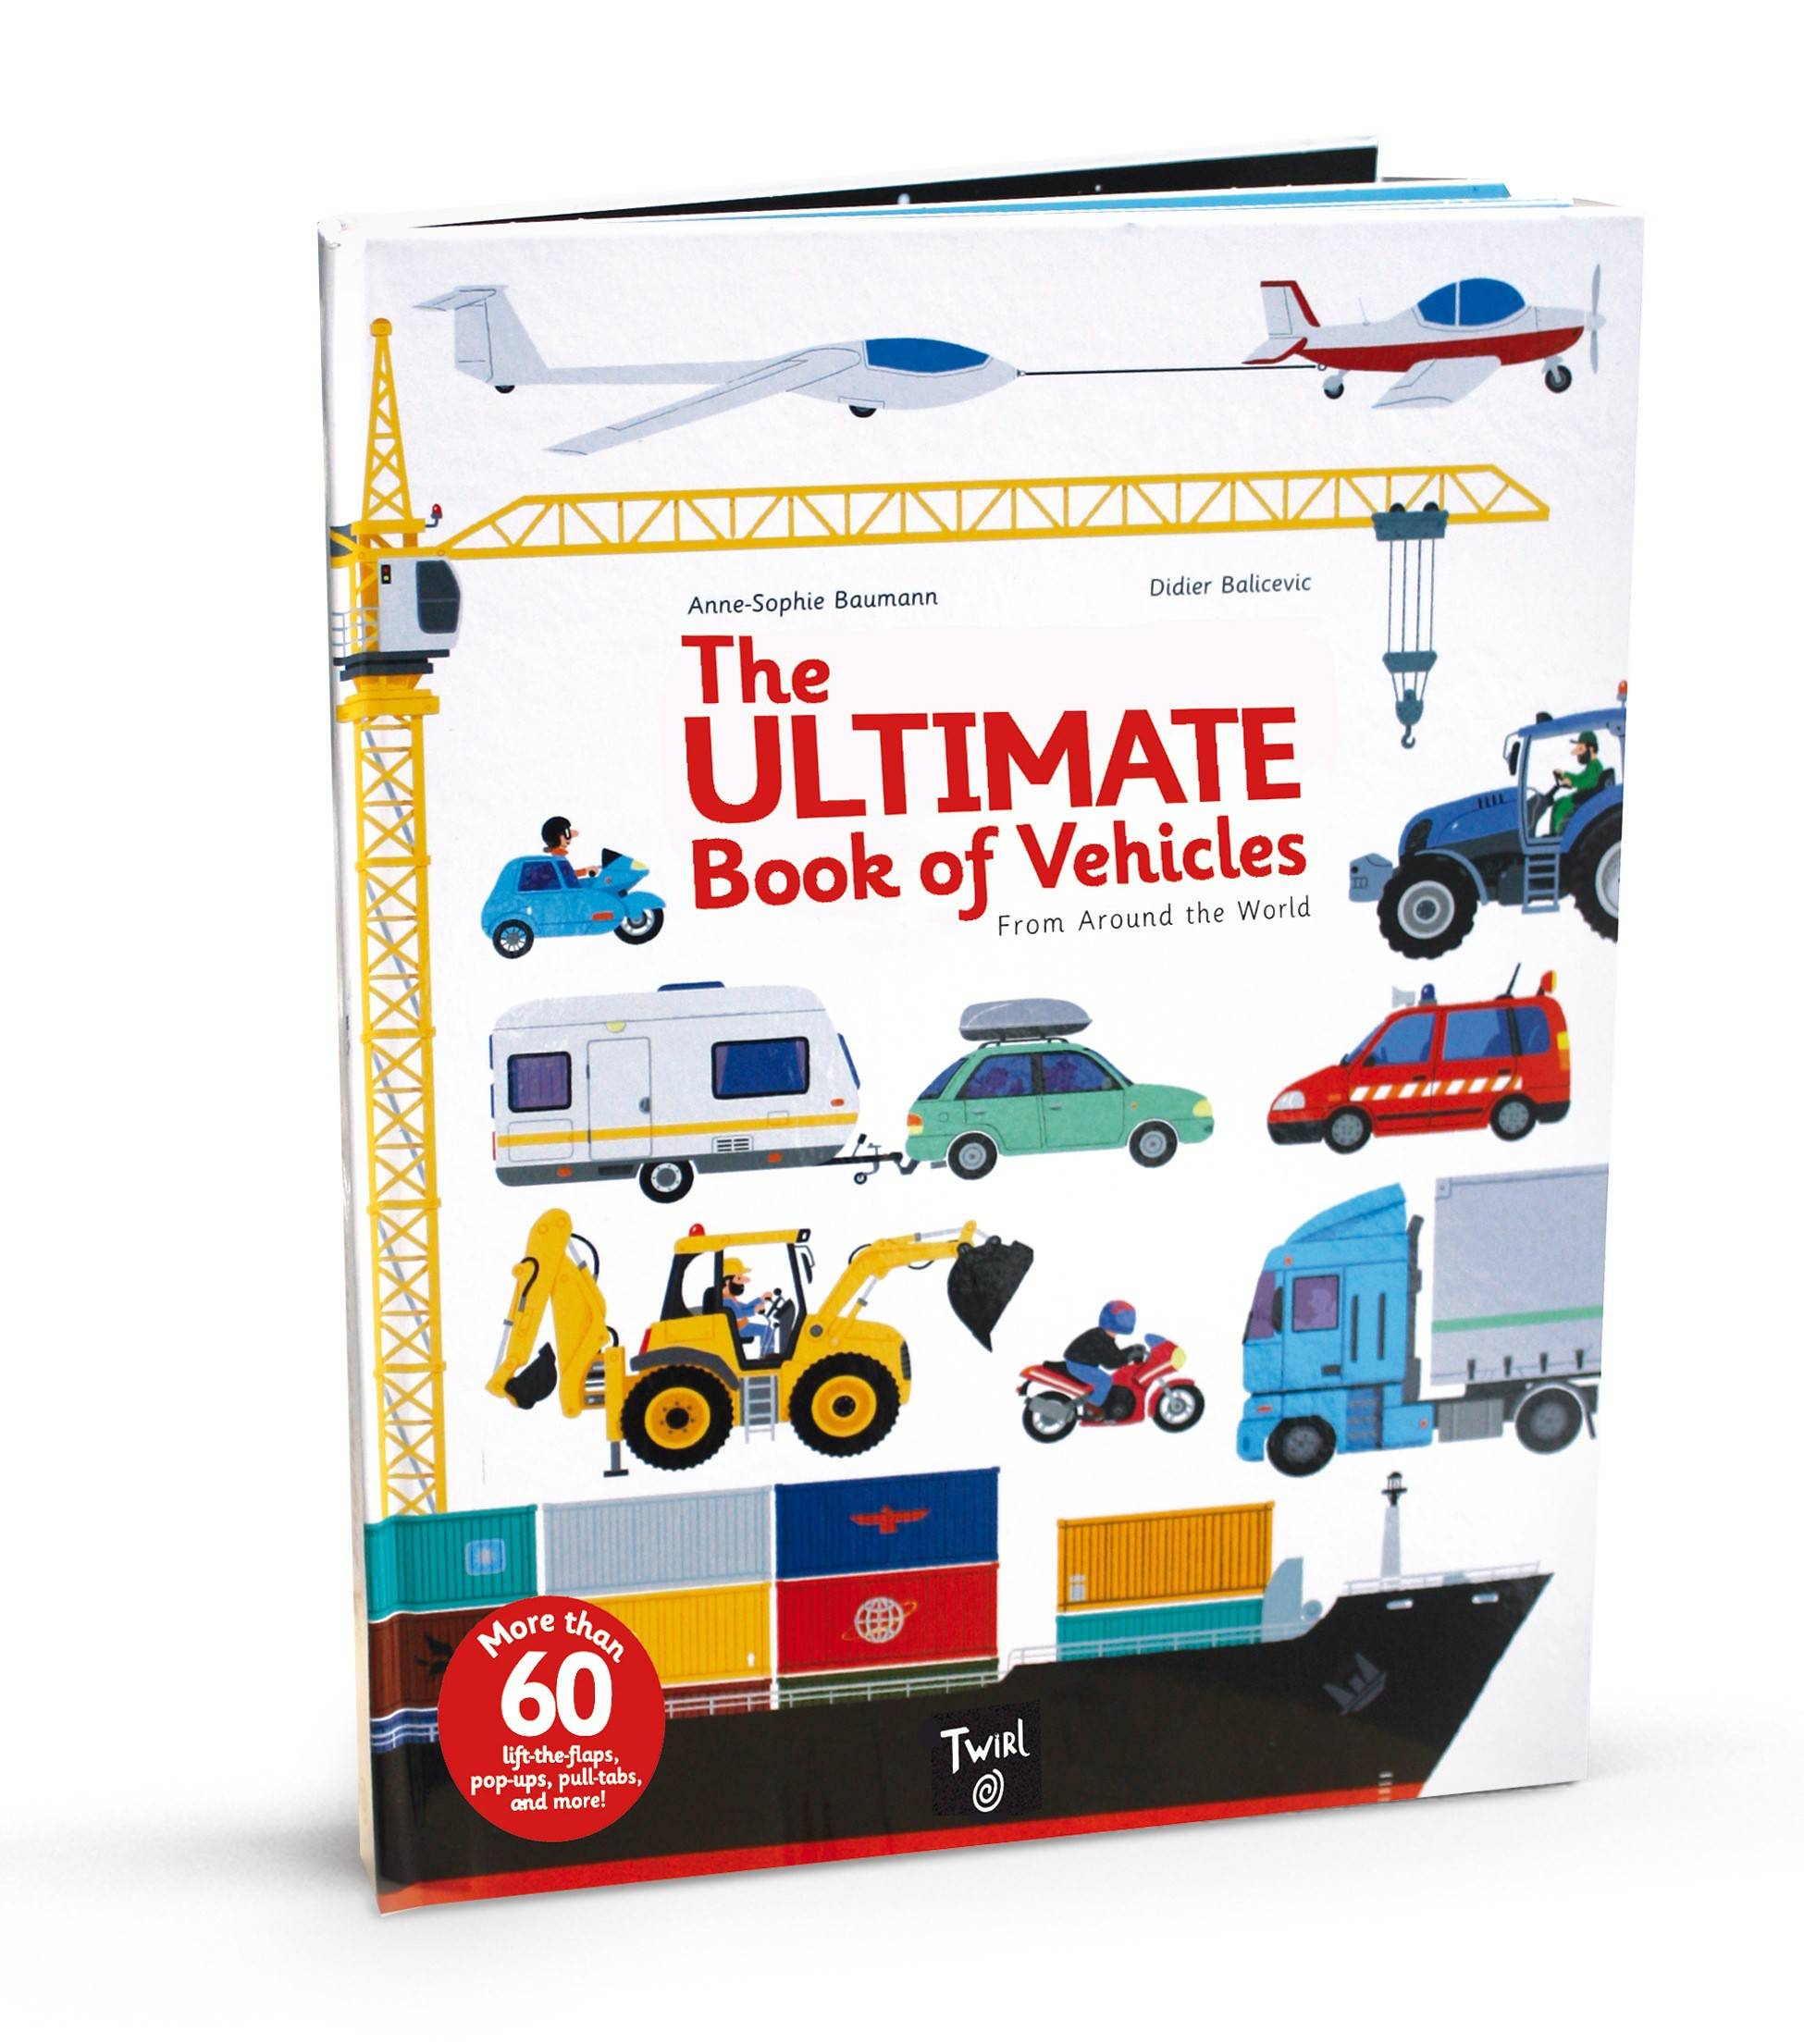 """The Ultimate Book of Vehicles From Around the World"" by Anne-Sophie Baumann & Didier Balicevic, (2014, Twirl, distributed by Chronicle Books), $19.99, 23 pages."